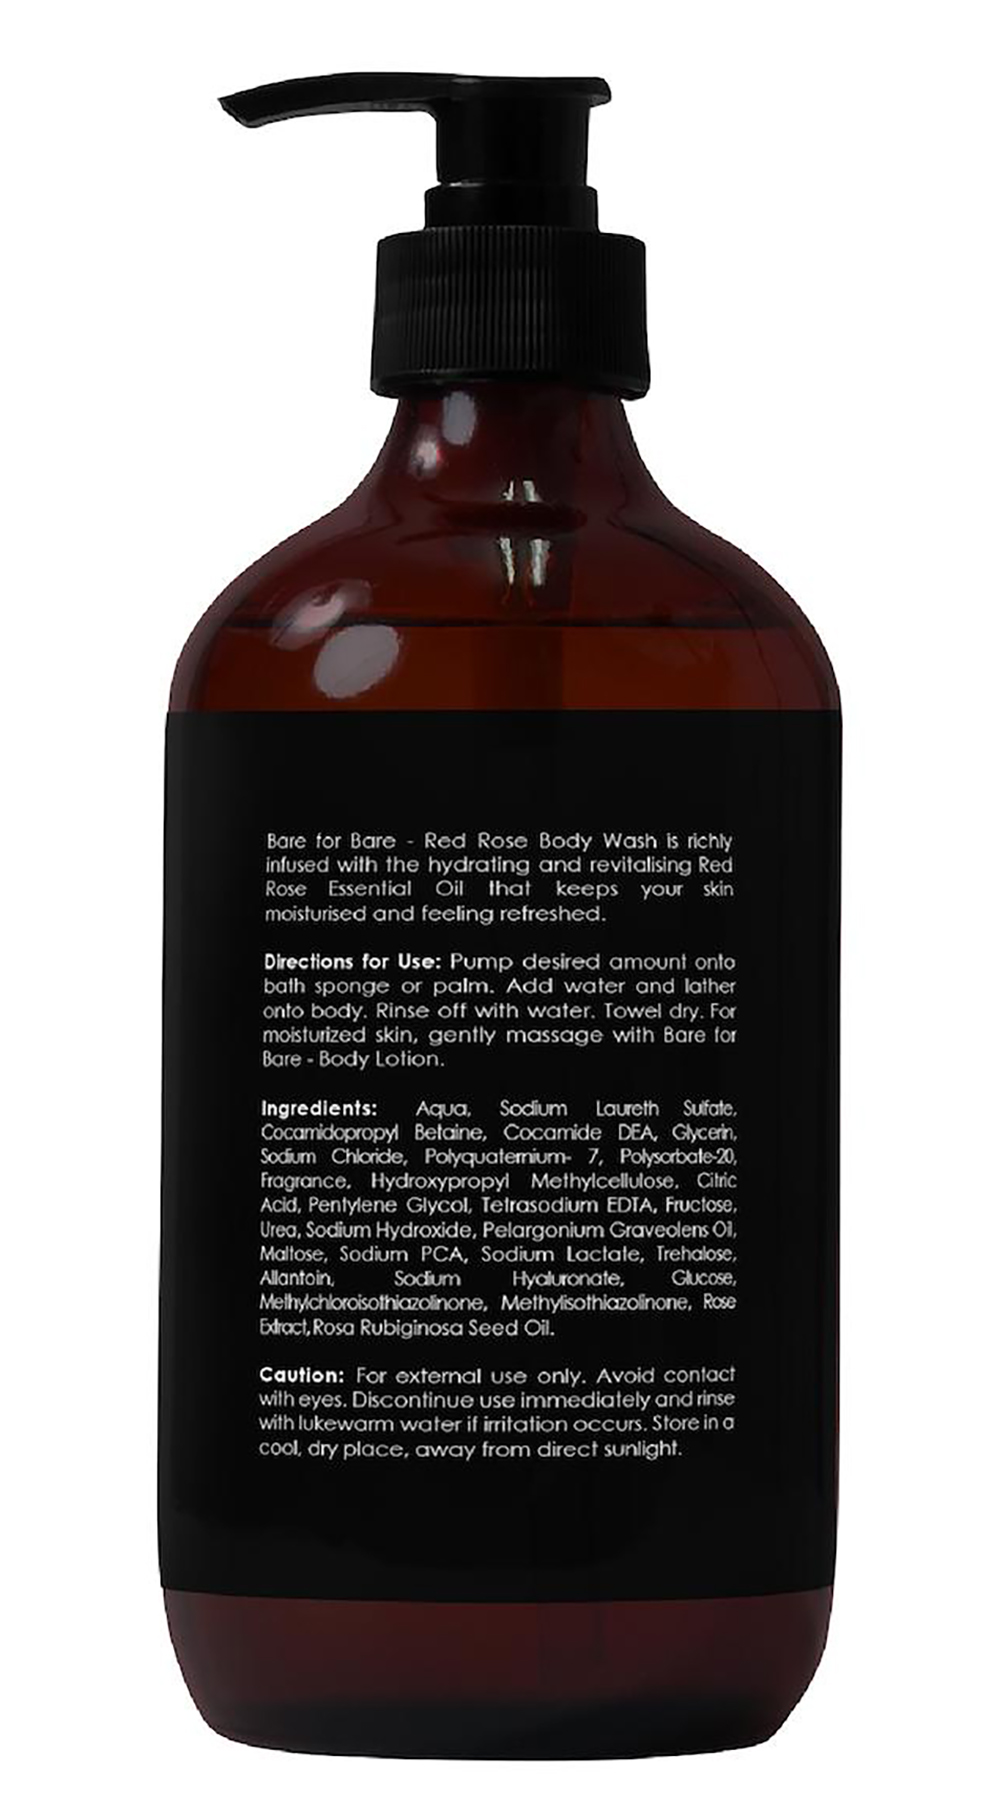 [MPLUS] Bare For Bare Body Wash Red Rose 500Ml